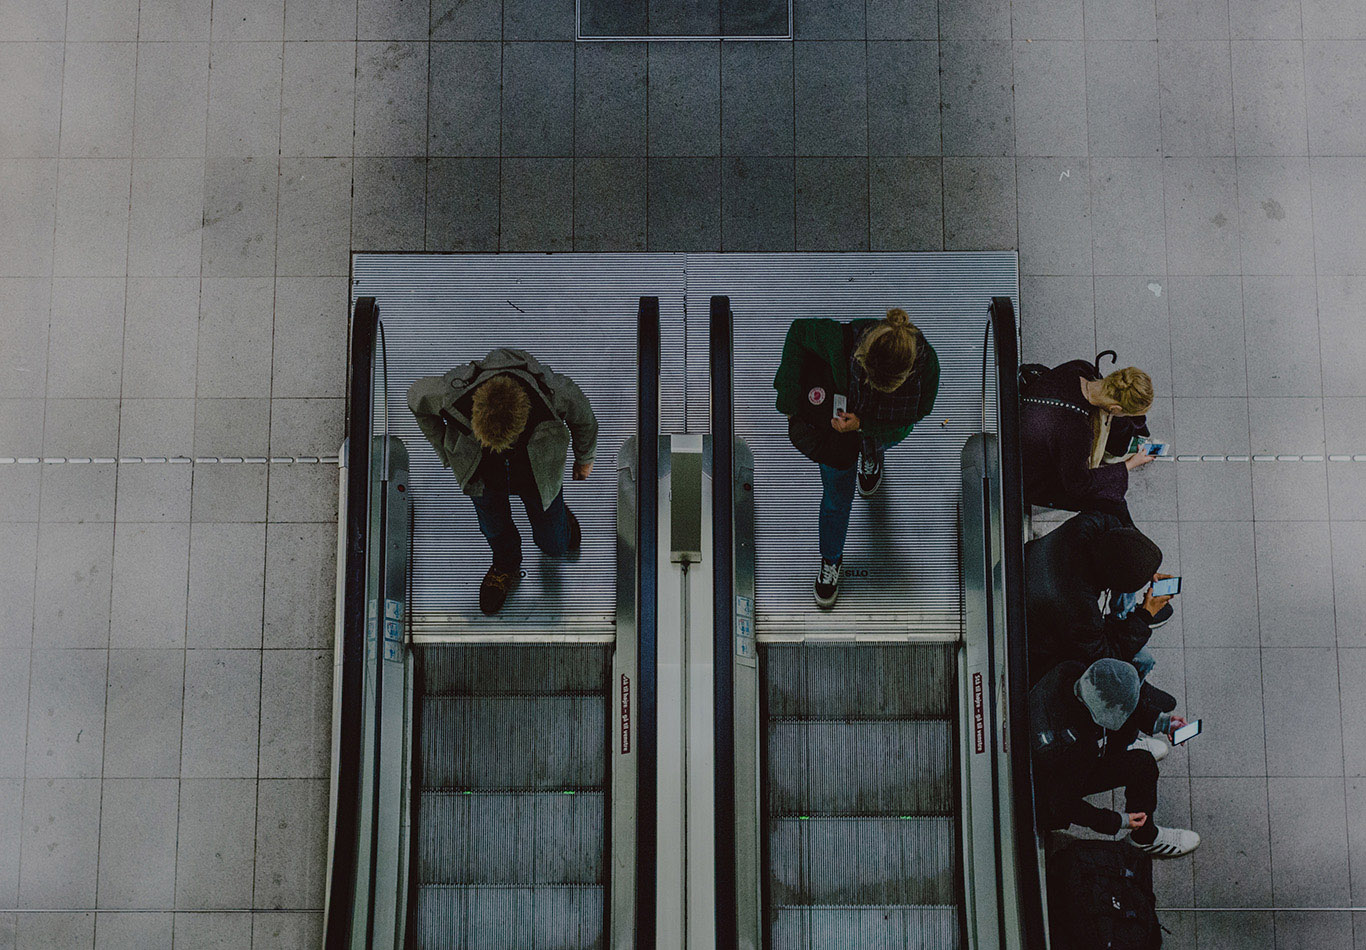 Two people are walking on to two separate escalators. Four people are sitting next to an escalator and they are on their phones